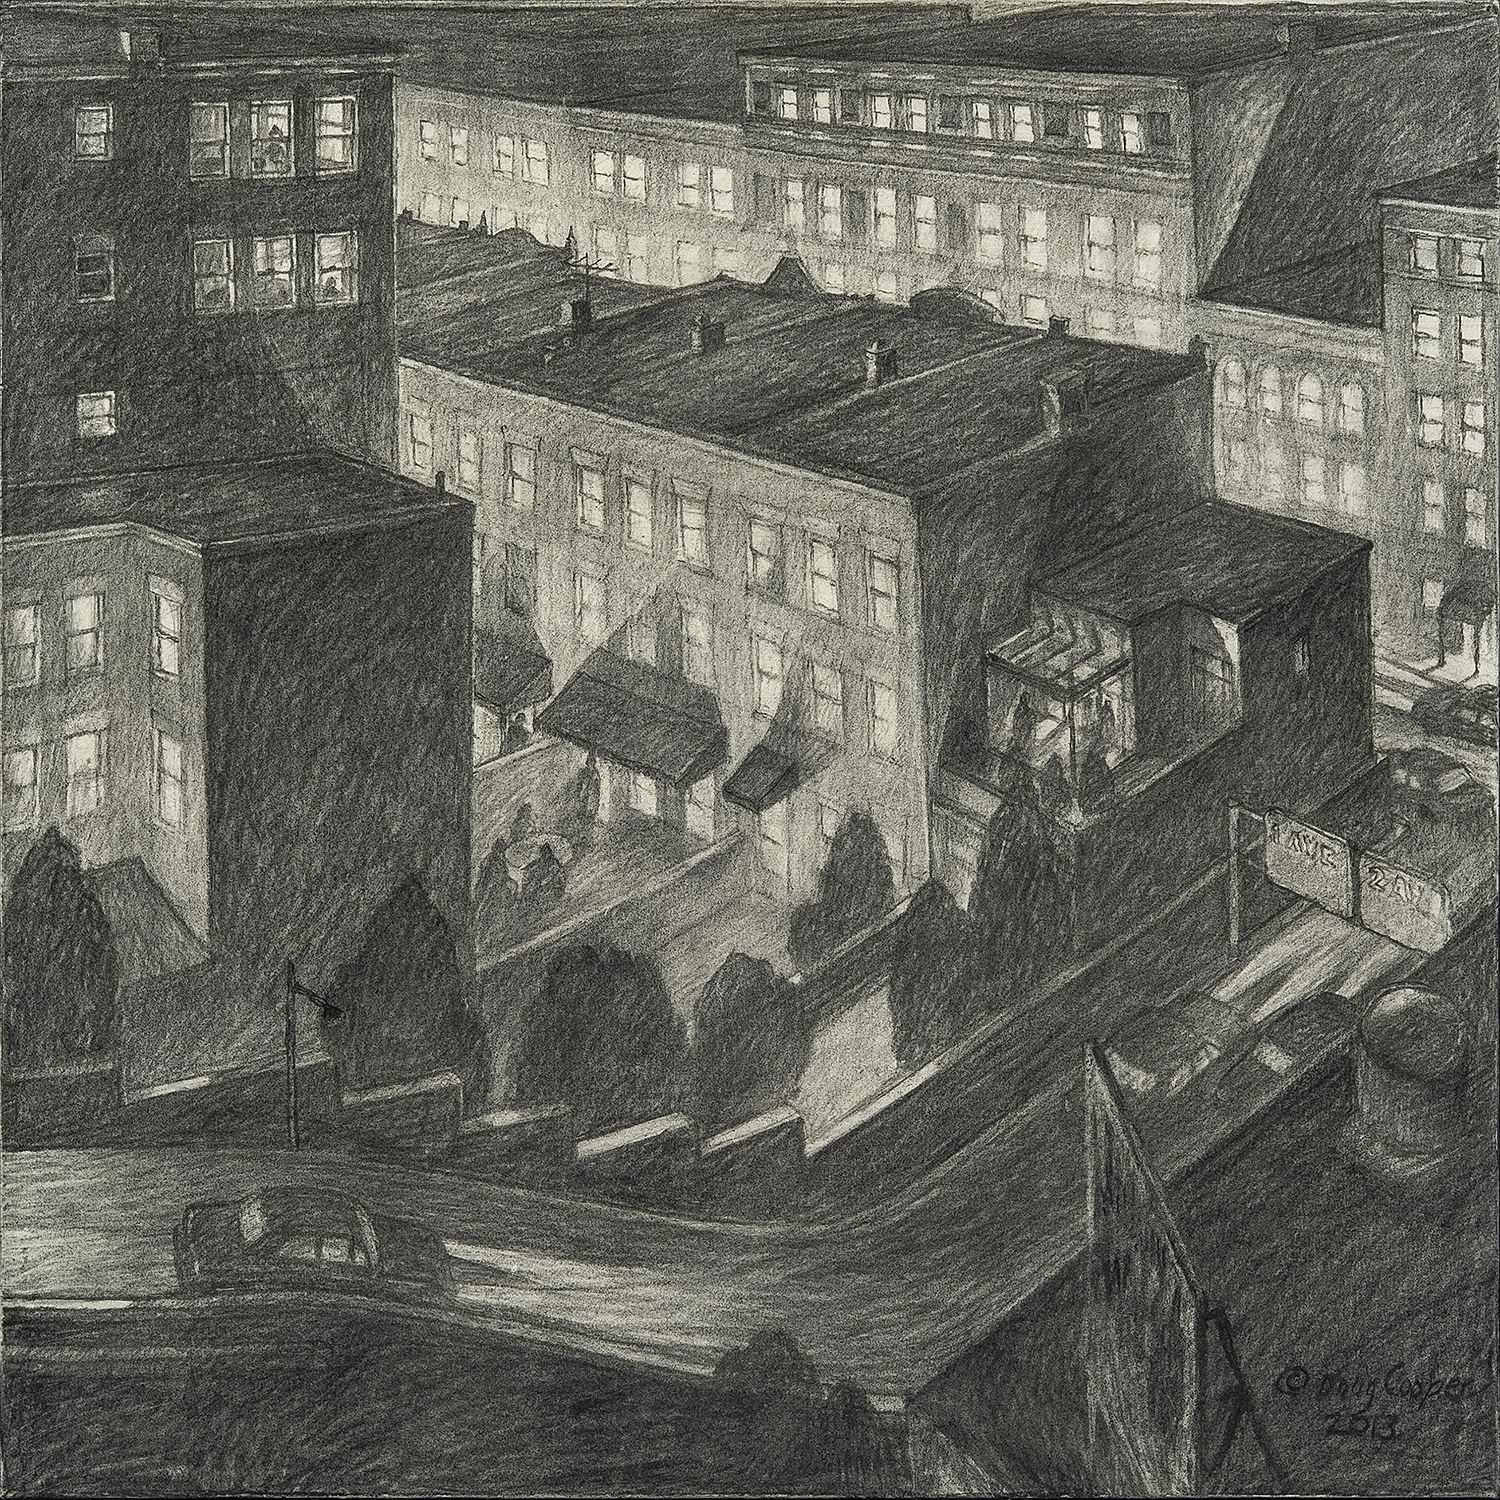 """Image of Douglas Cooper's """"Left Turn From the Viaduct,"""" charcoal on paper mounted on board, 24 by 24 inches, created in 2013."""